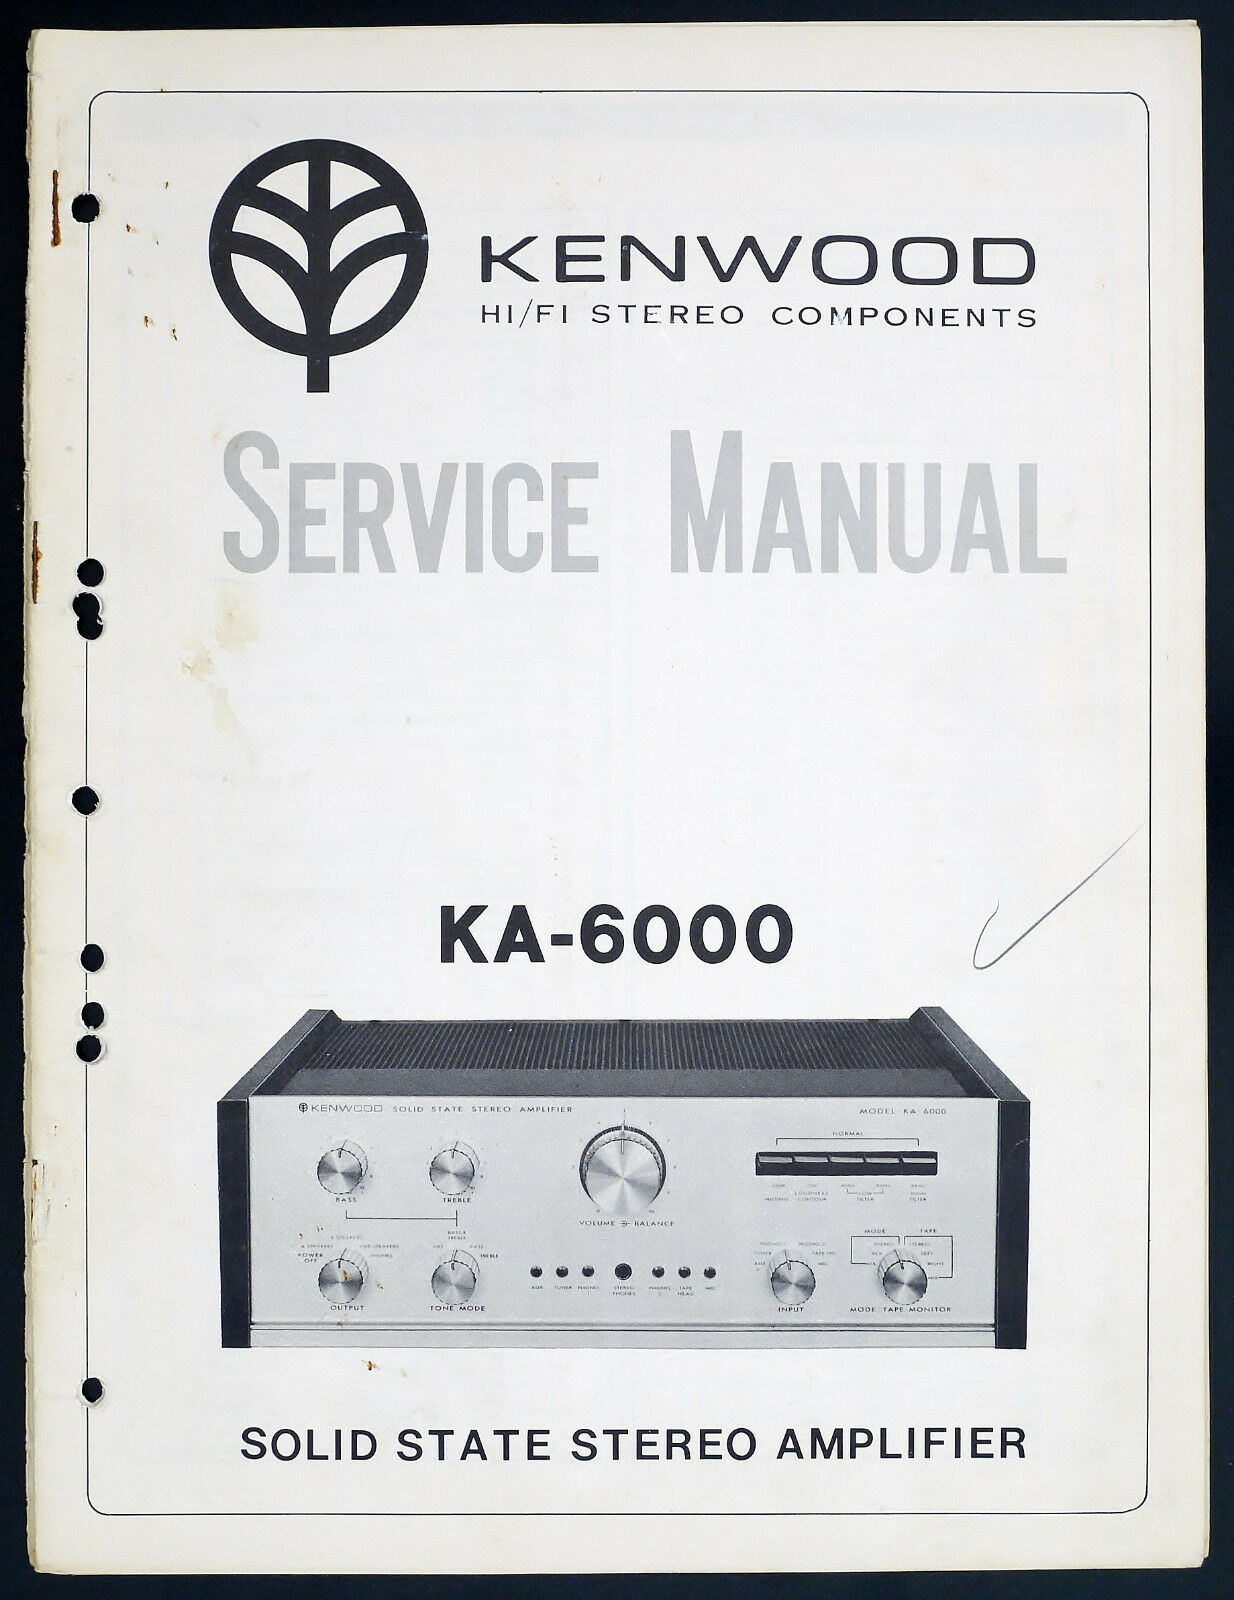 Kenwood KA-6000 Original Stereo Amplifier/AMPLIFIER SERVICE MANUAL/Diagram  O136 1 of 1Only 2 available ...